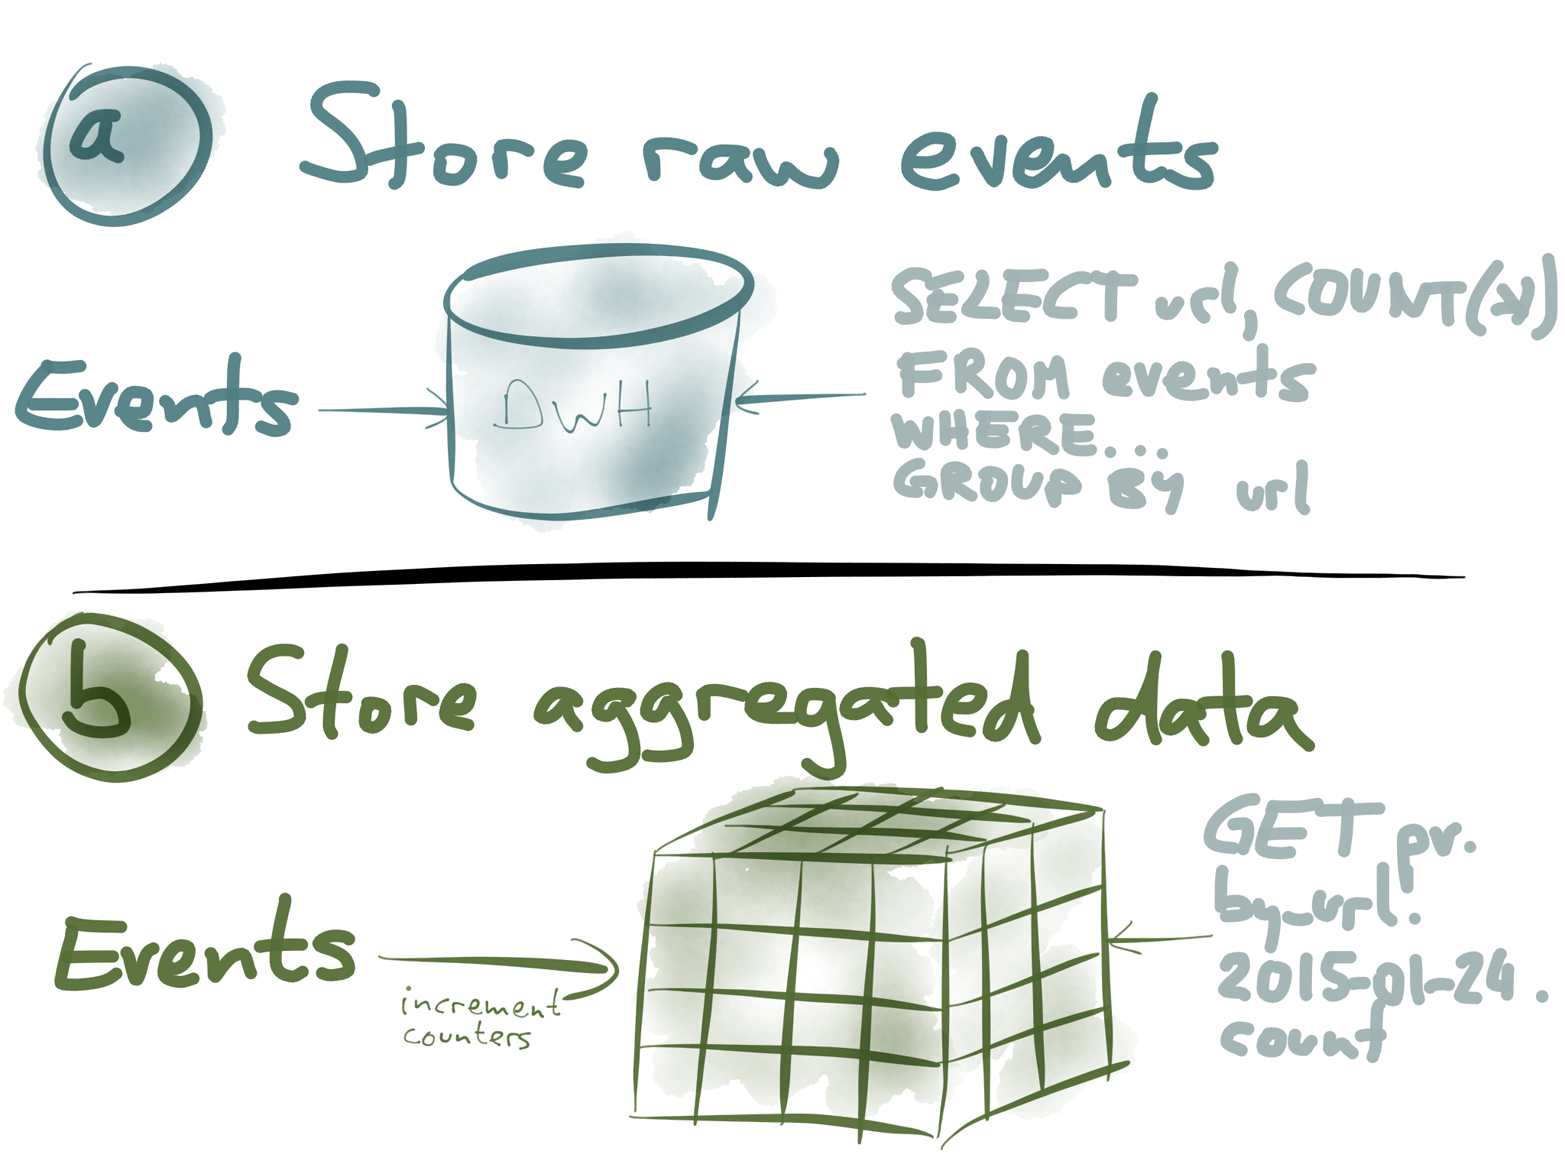 Two options for turning page view events into aggregate statistics.